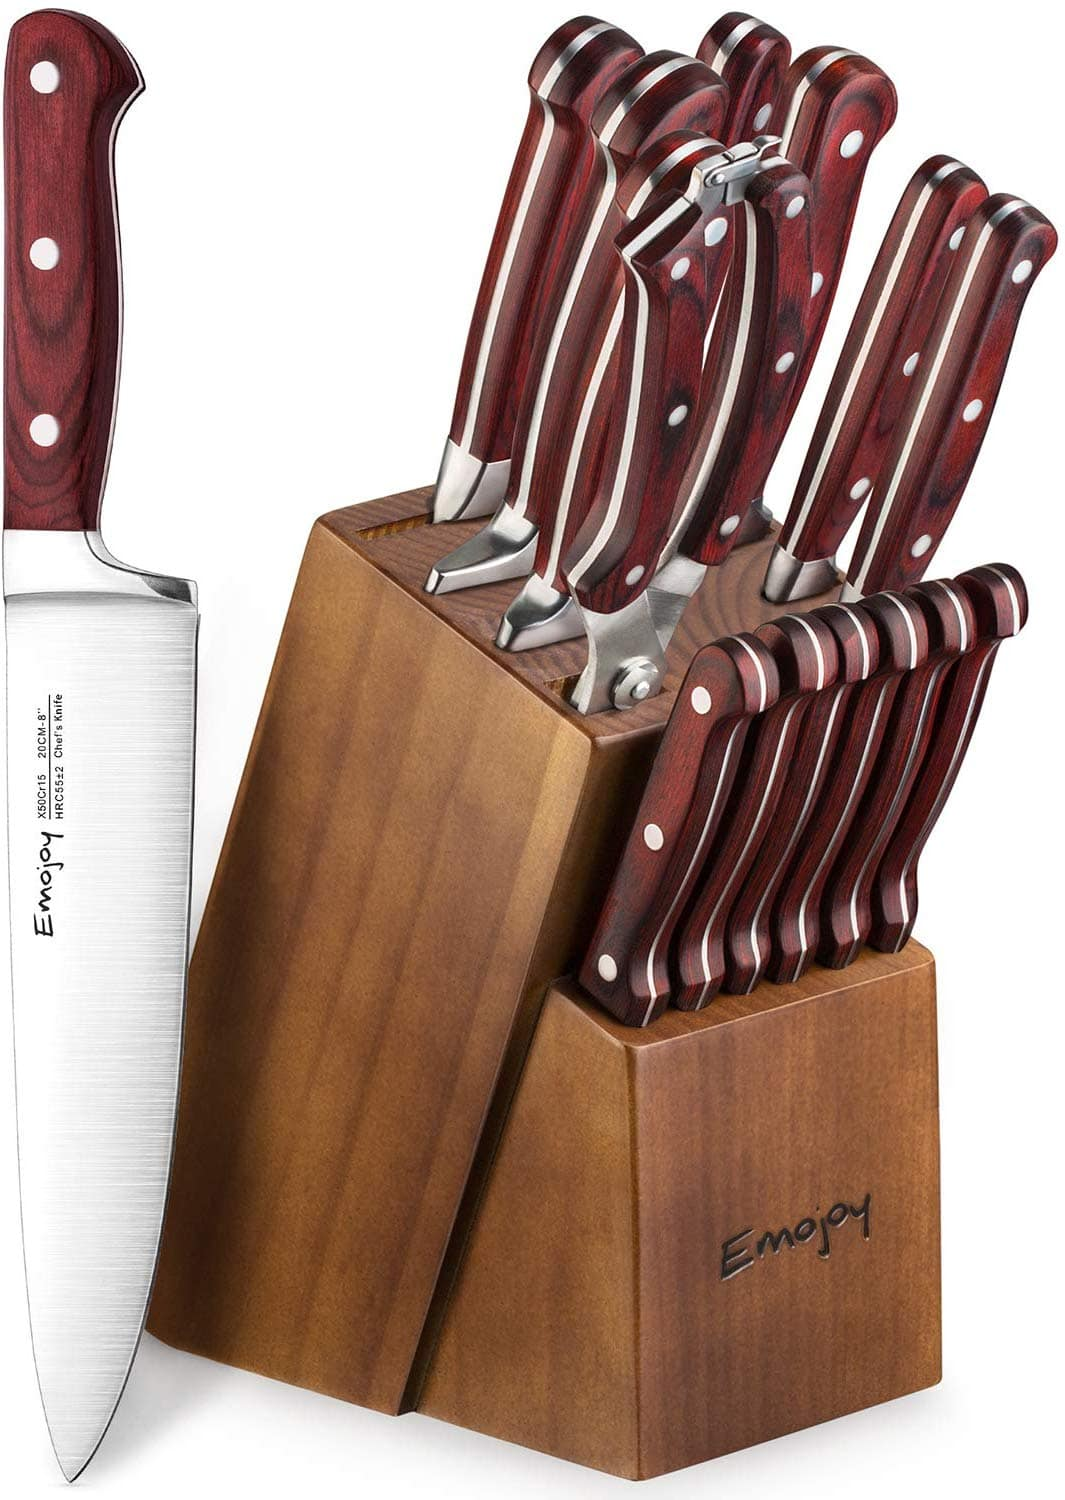 photo of a knife block filled with kitchen knives